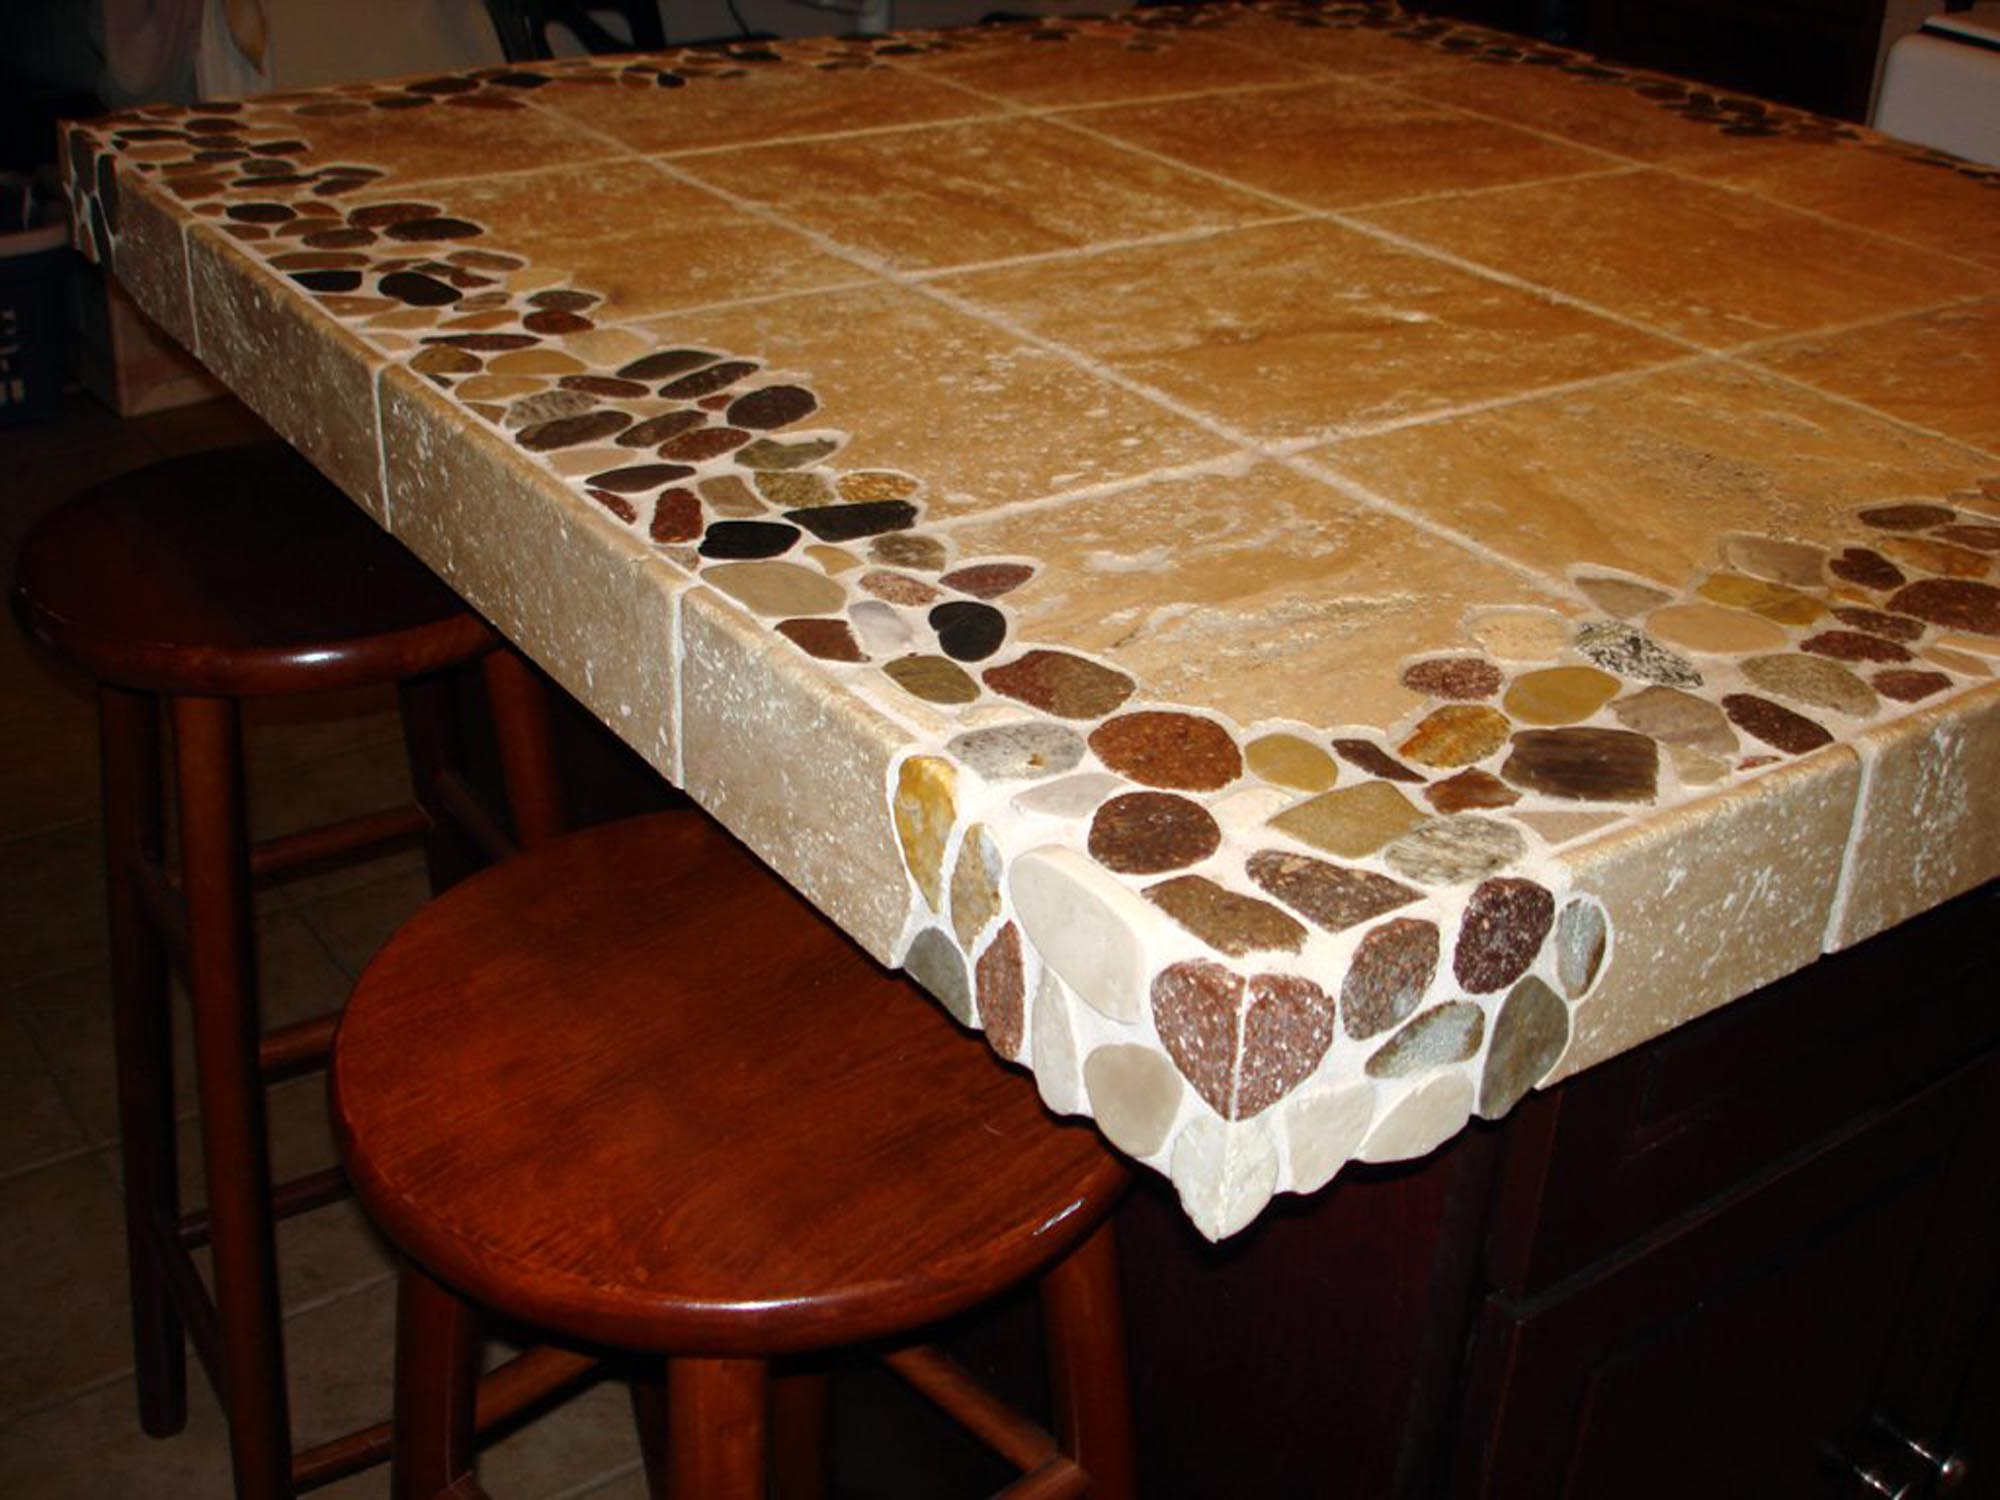 riverstone and travertine custom kitchen island countertop kitchen island countertop Riverstone and Travertine custom 4 x4 kitchen island countertop New Jersey Custom Tile